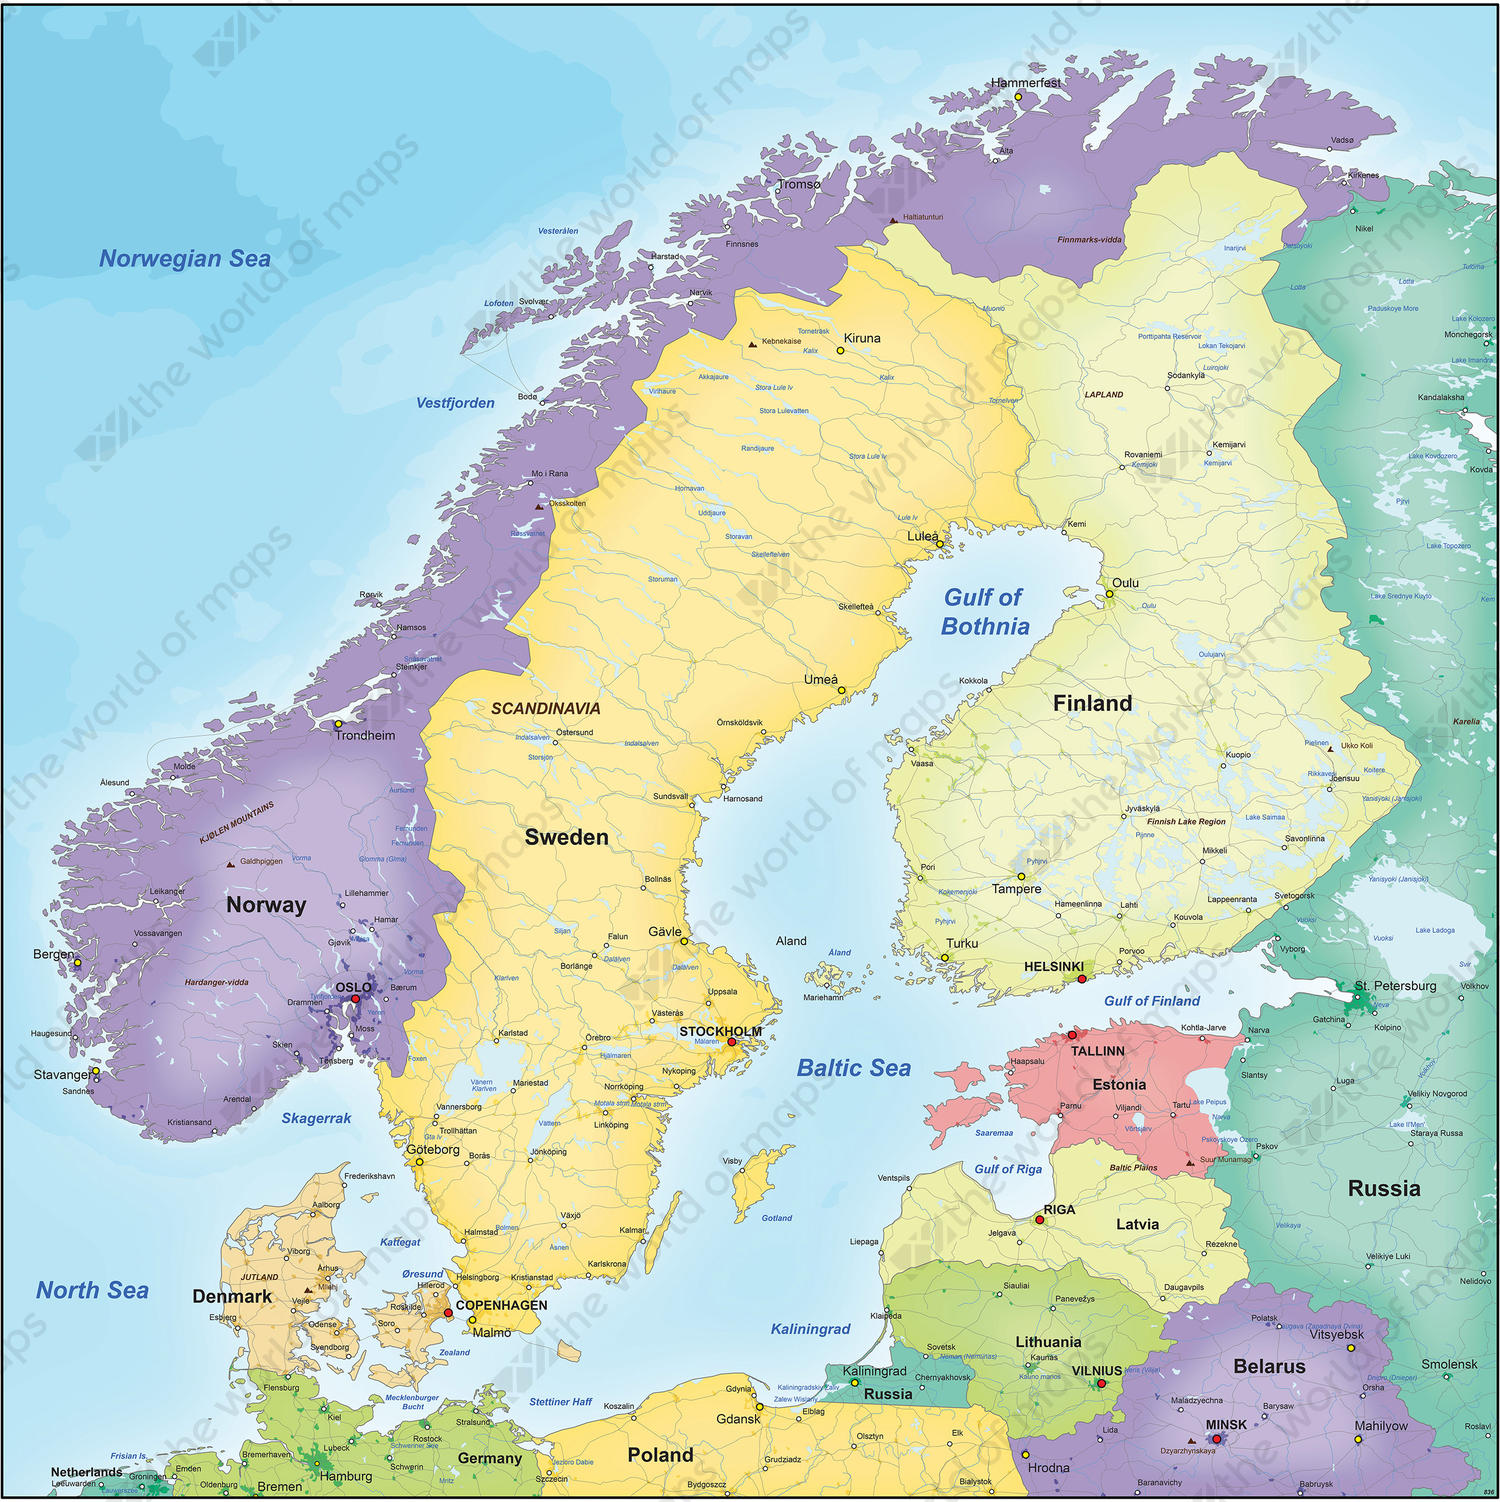 Digital Political Map Scandinavia 836 The World of Mapscom